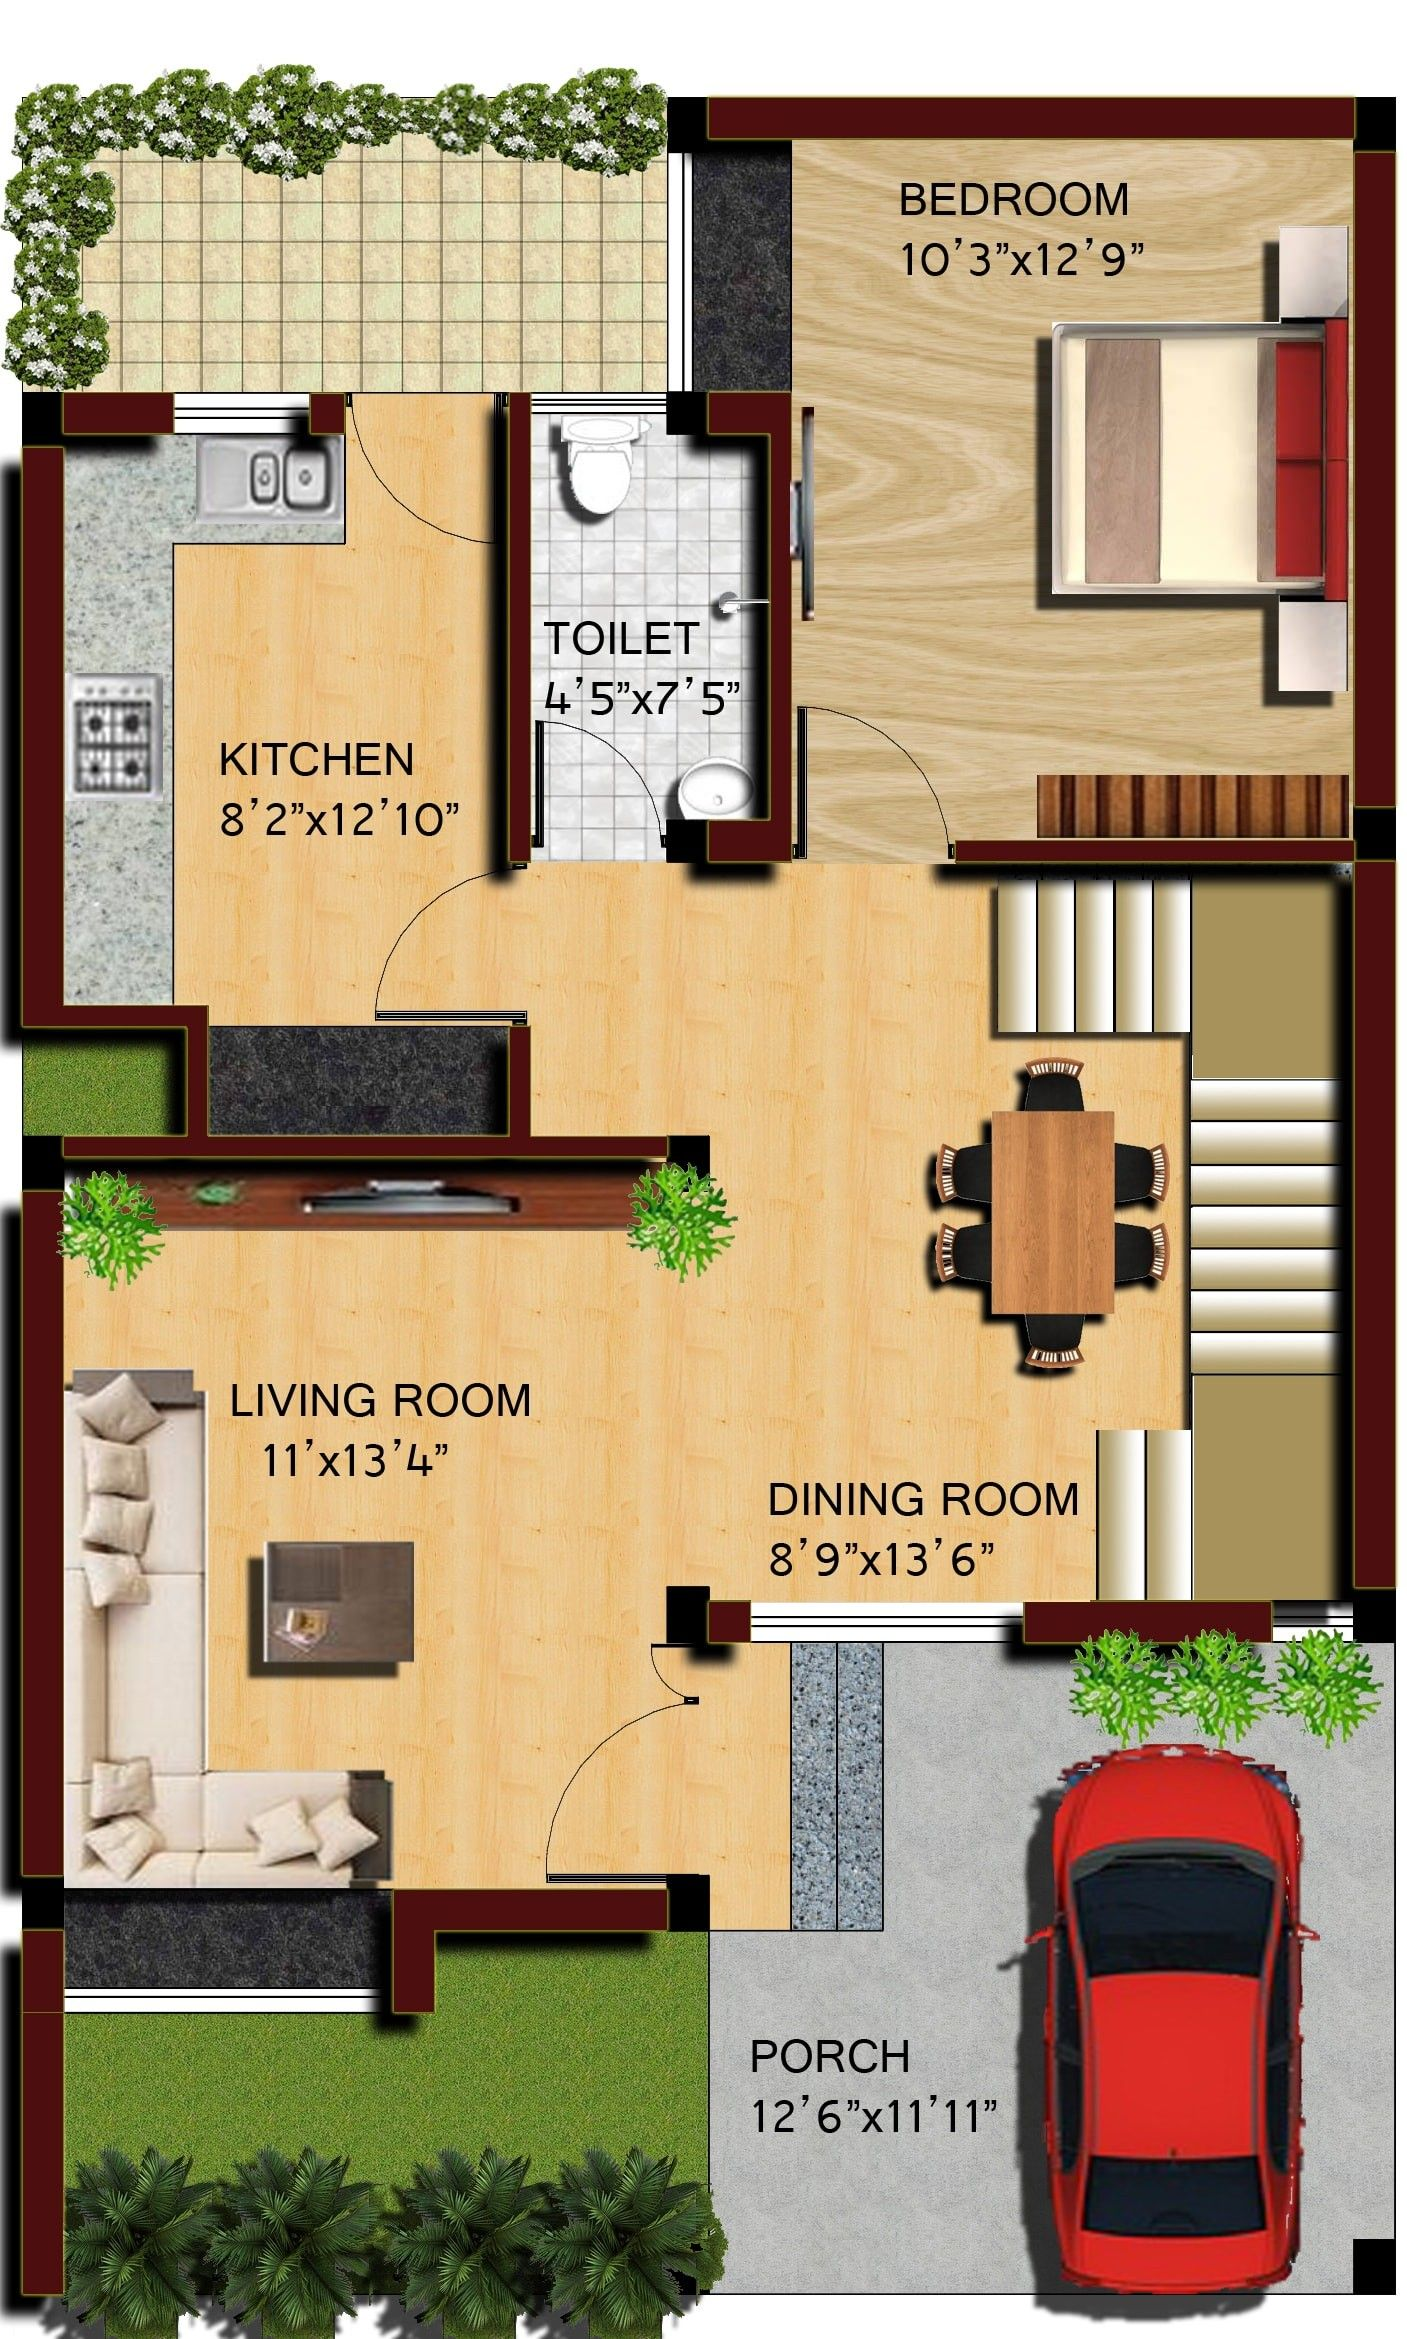 Extraordinary 25x40 House Plan Images Best Inspiration Home Design New House Plans 20x40 House Plans House Plans